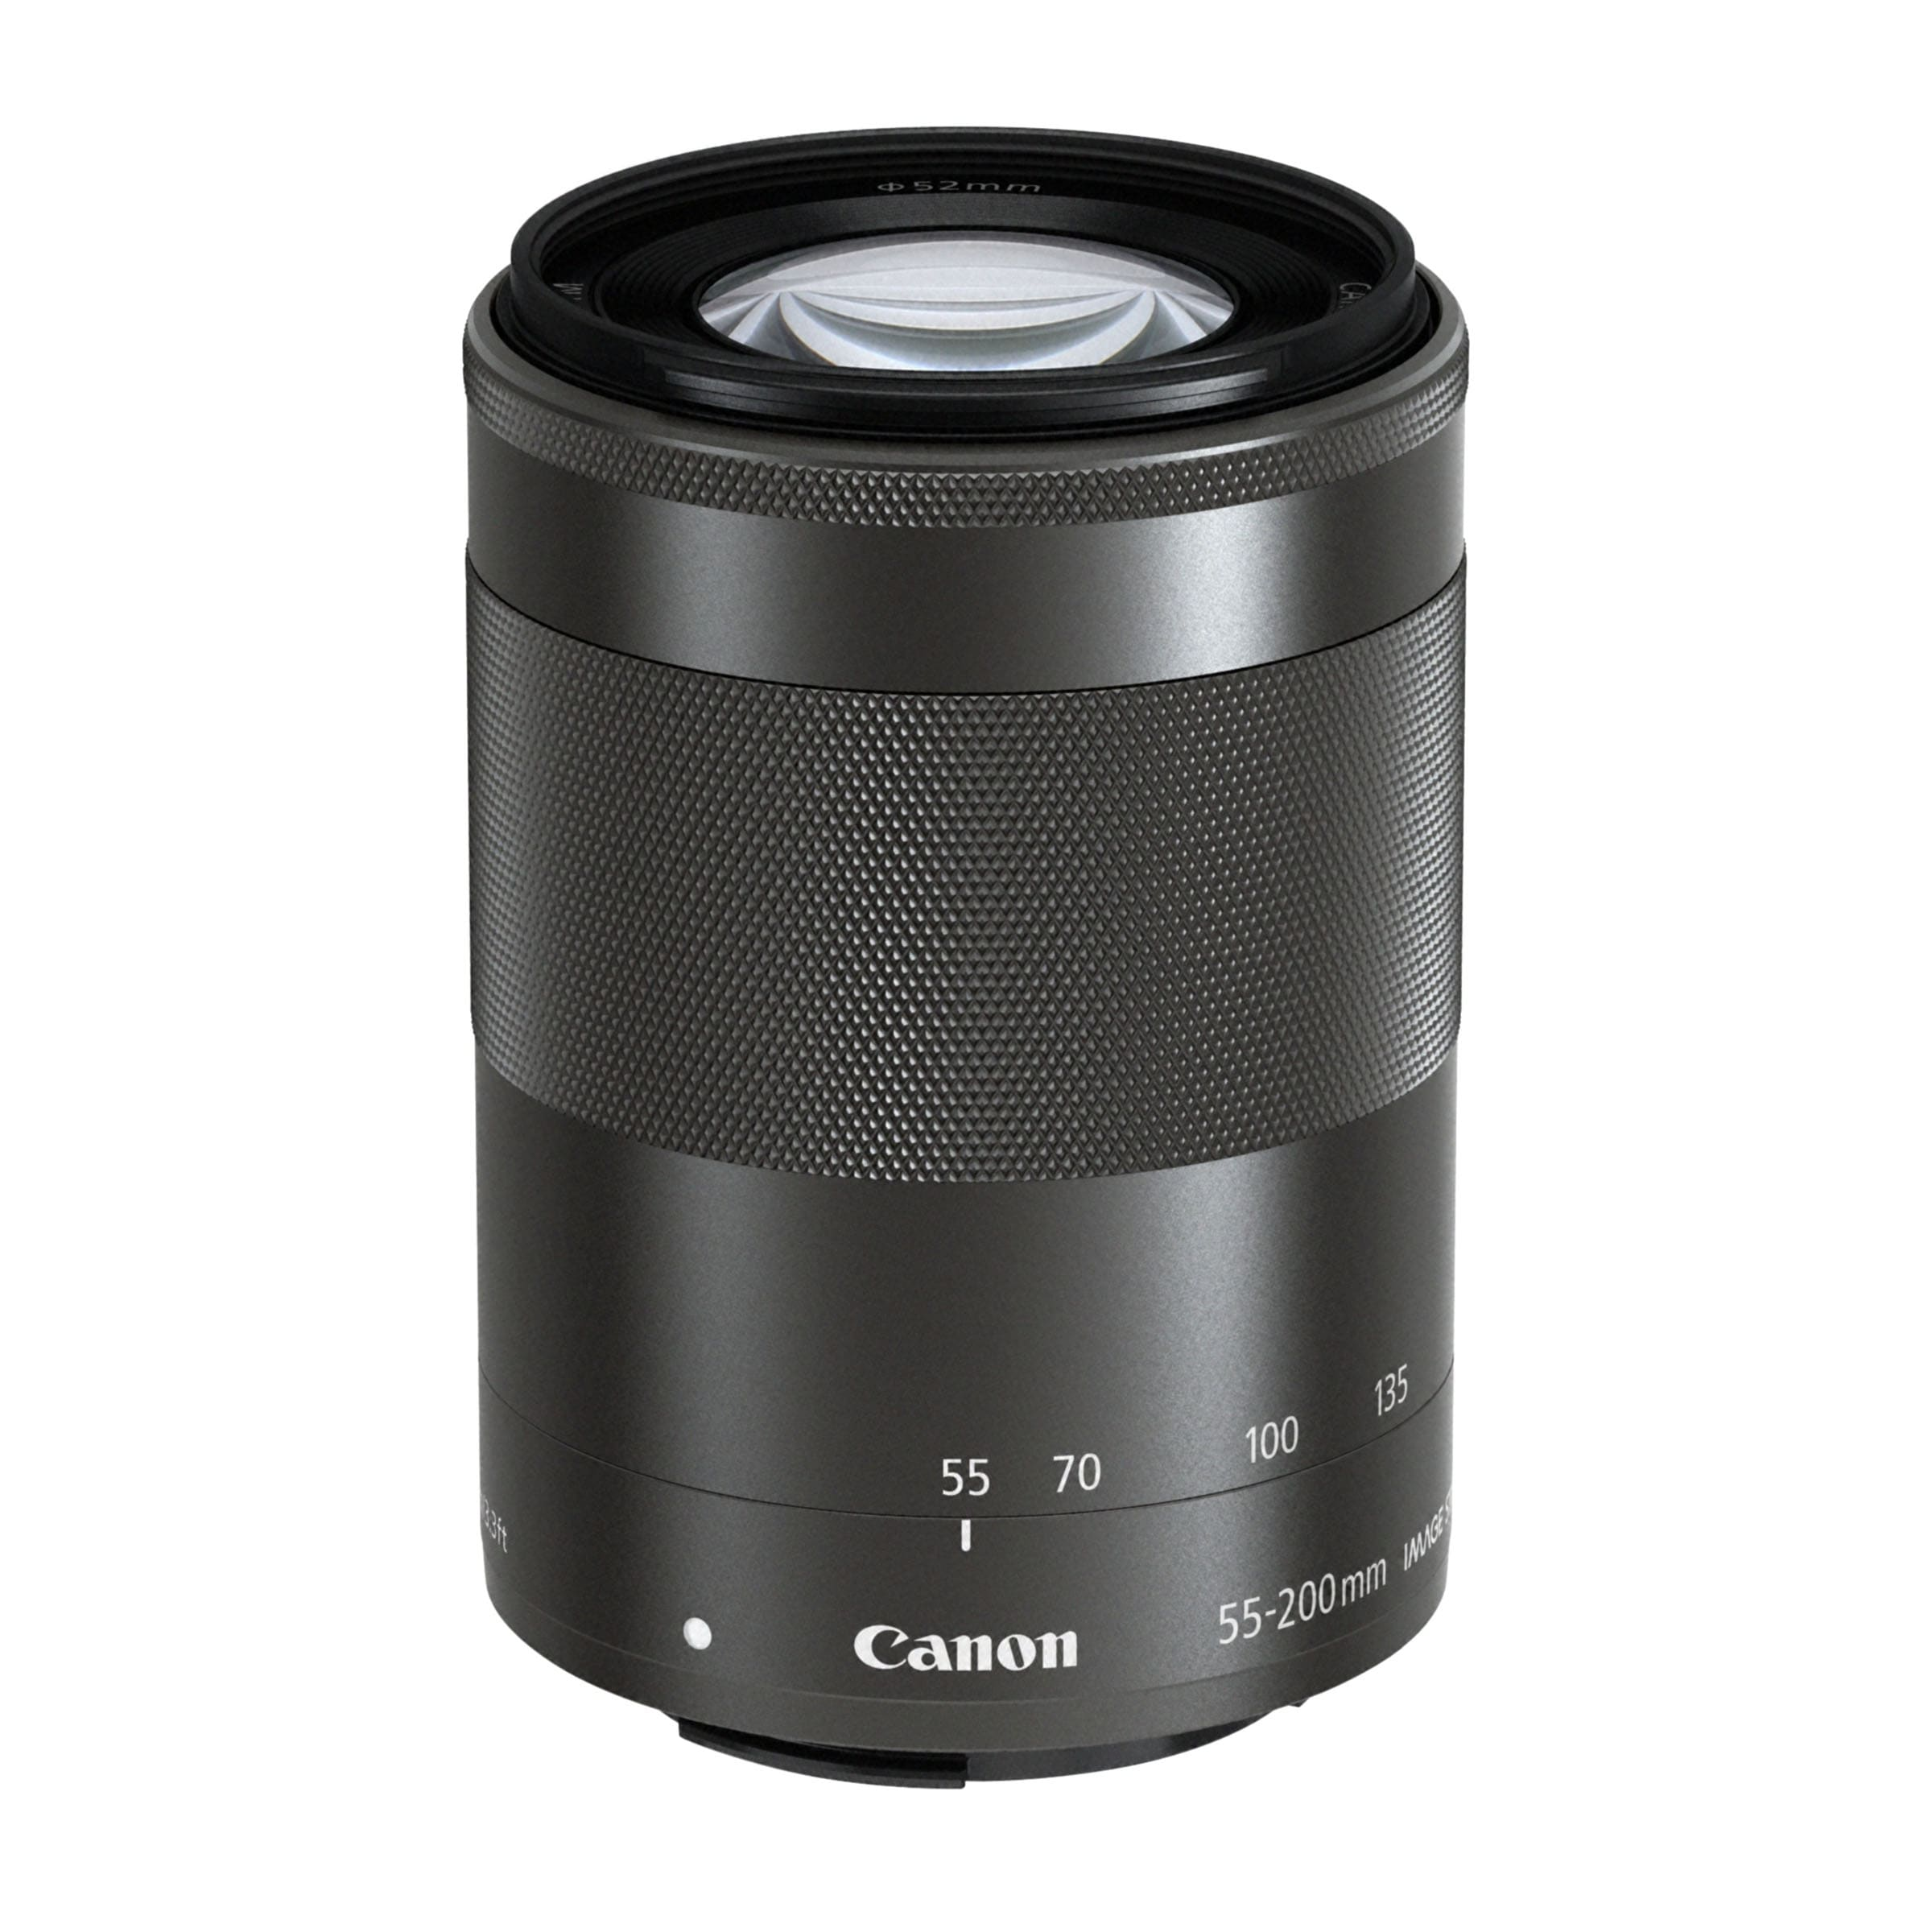 EF-M 55-200mm f4.5-6.3 IS STM (7)